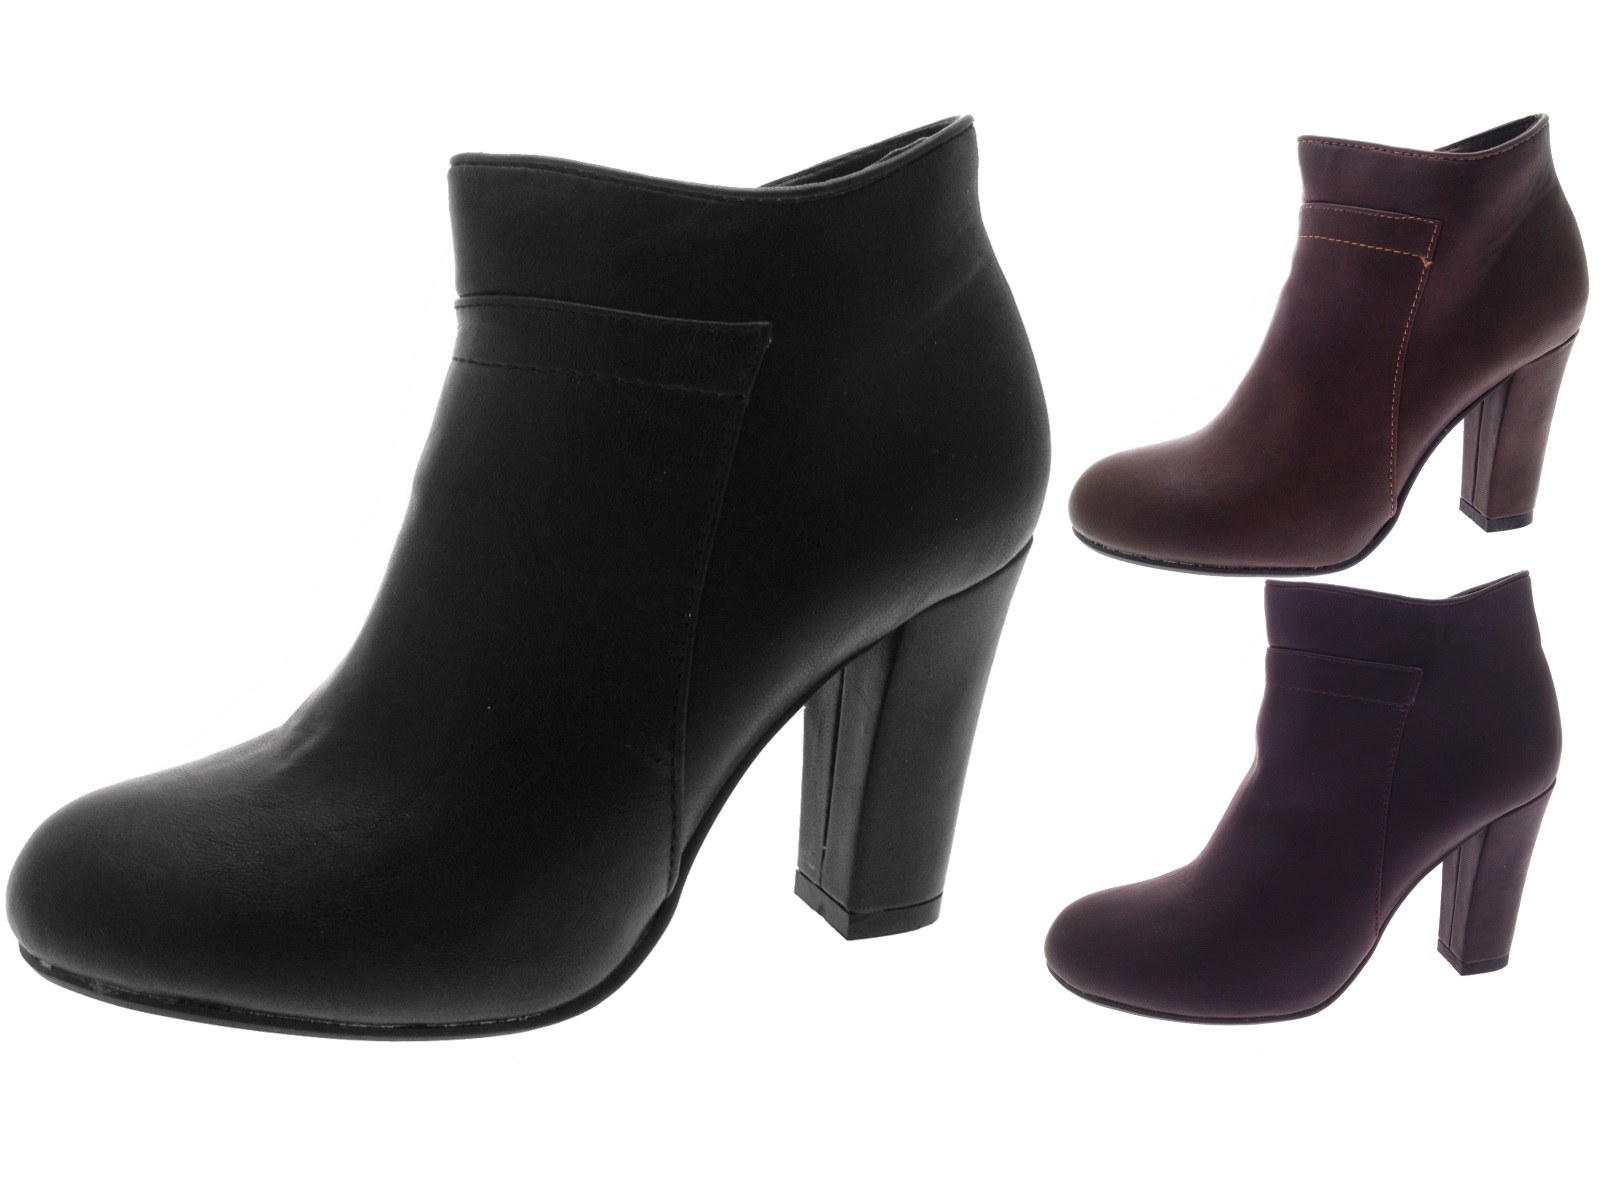 65435a15cee5 Womens Faux Leather High Block Heel Ankle Boots Platforms Ladies Size UK 3  - 8